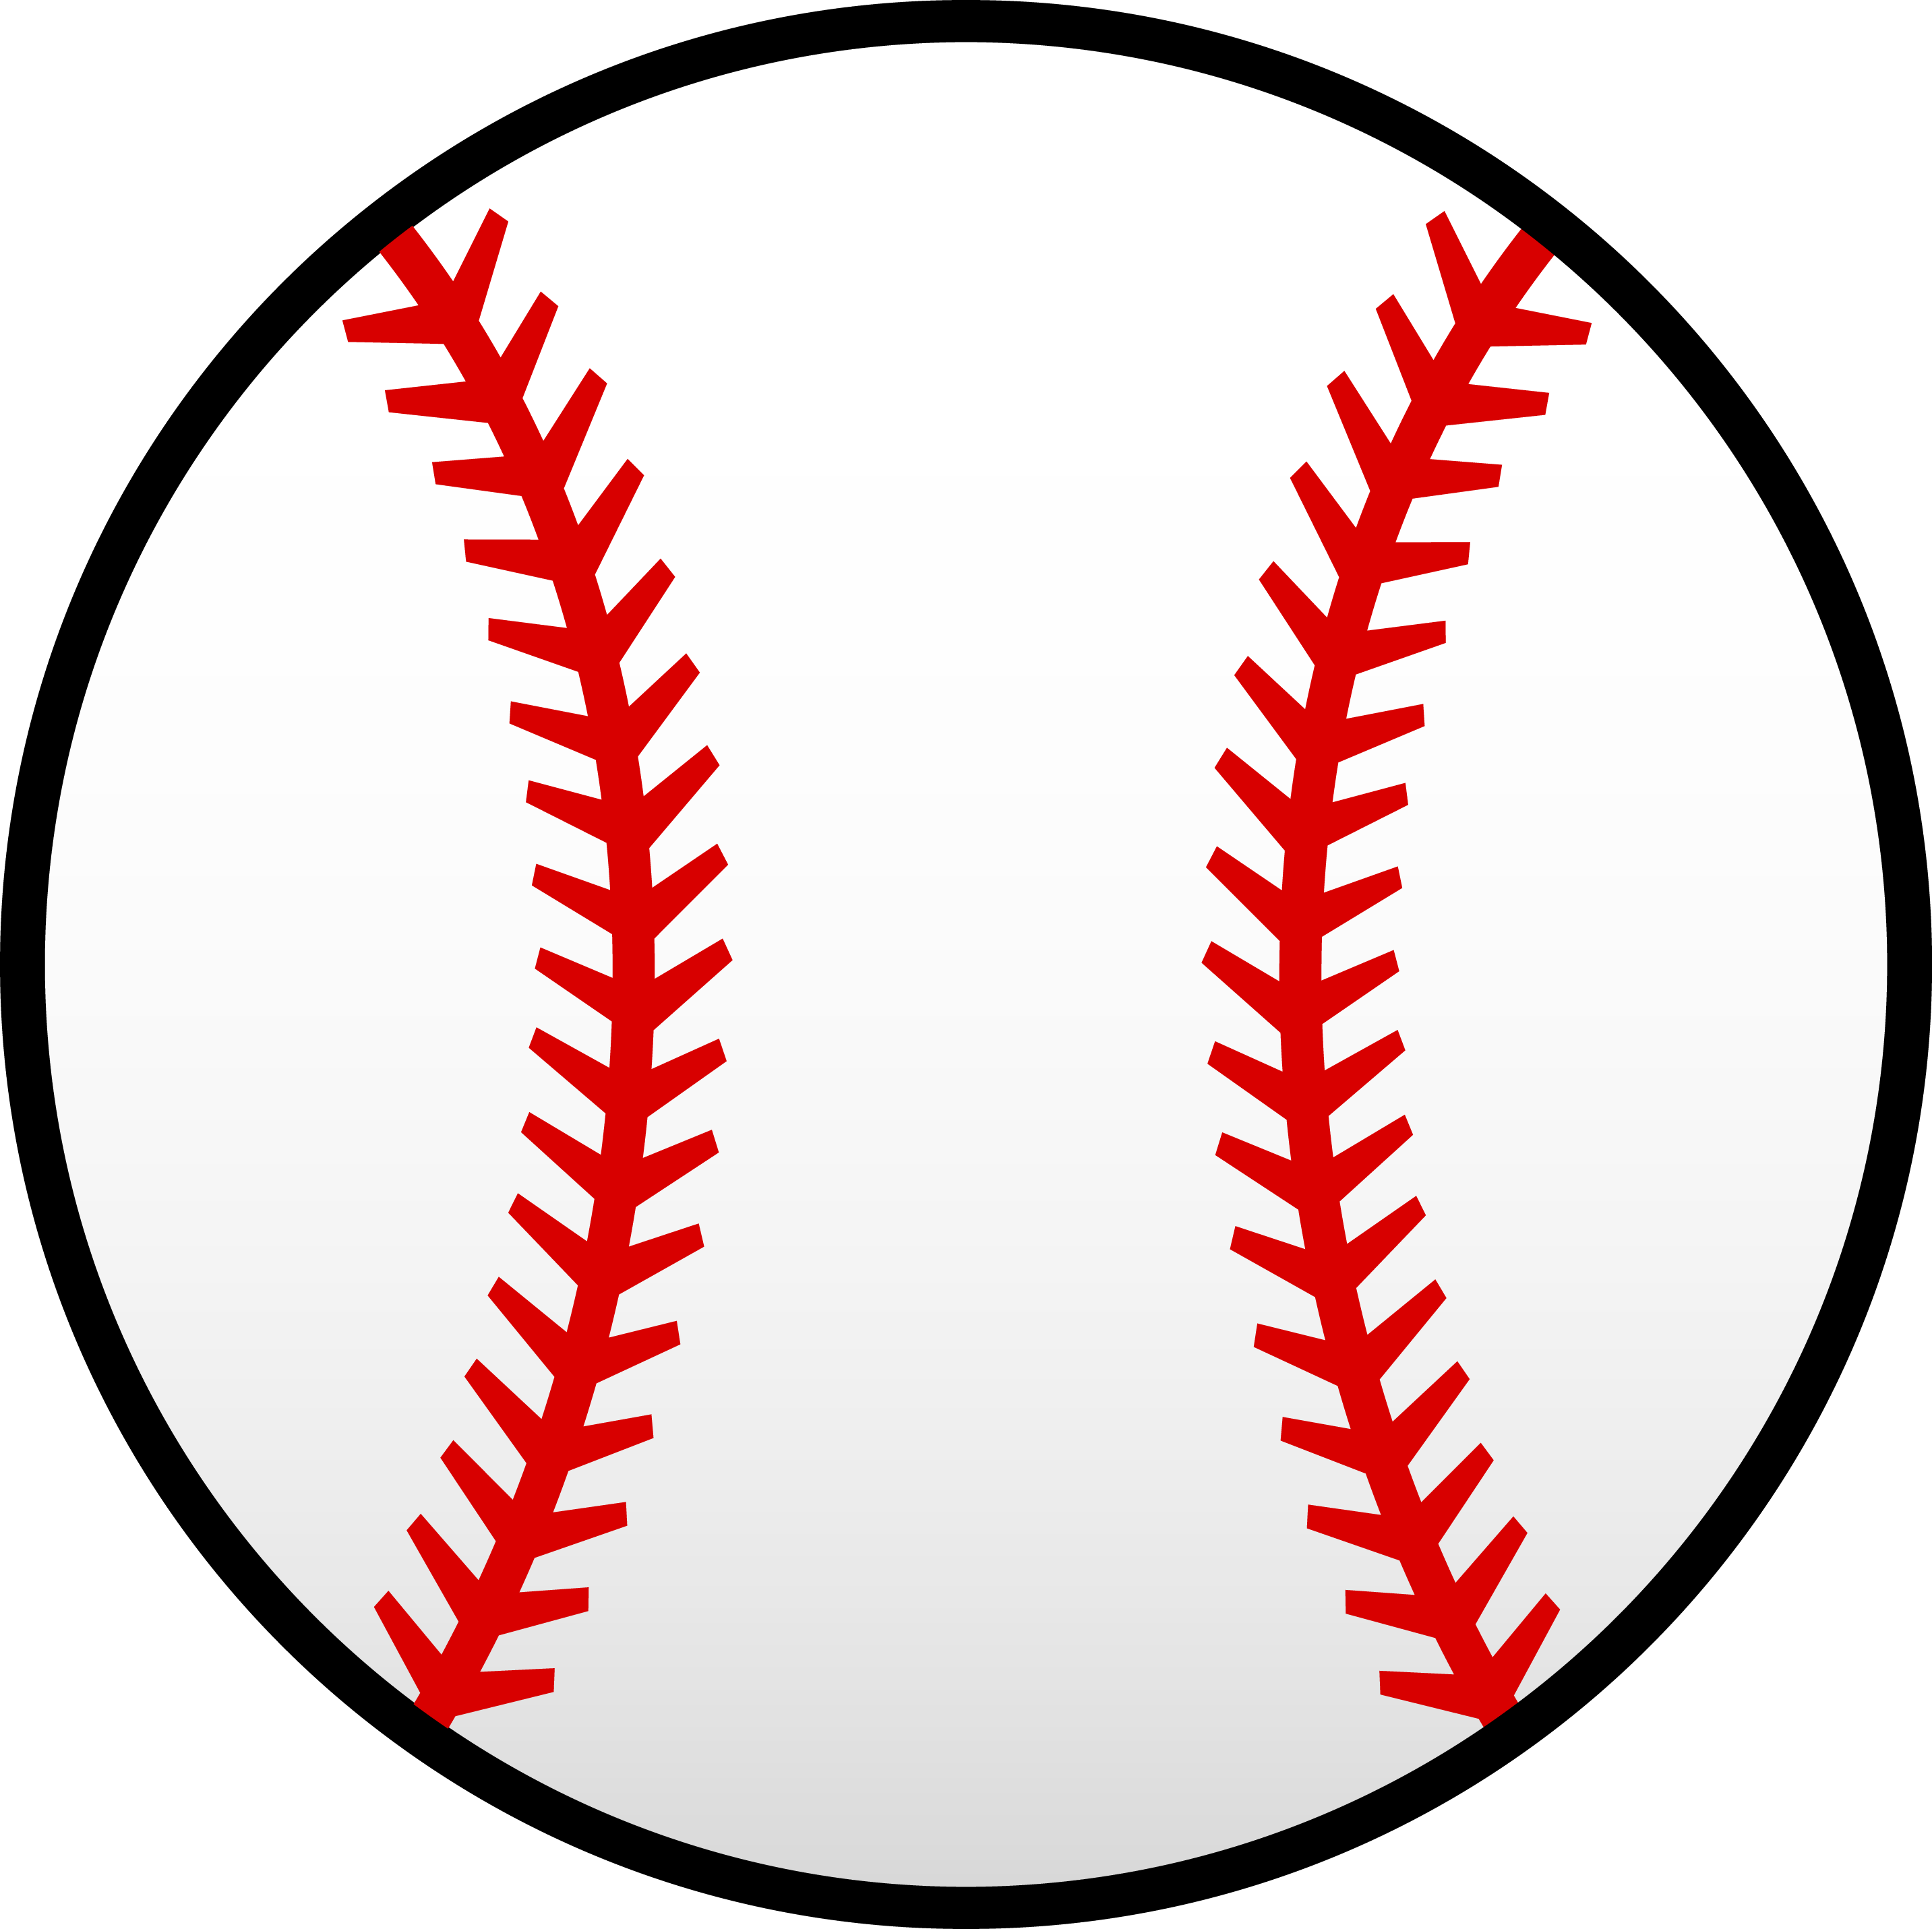 baseball pattern white baseball with red seams free clip art rh pinterest com basketball vector clip art free football baseball vector clipart